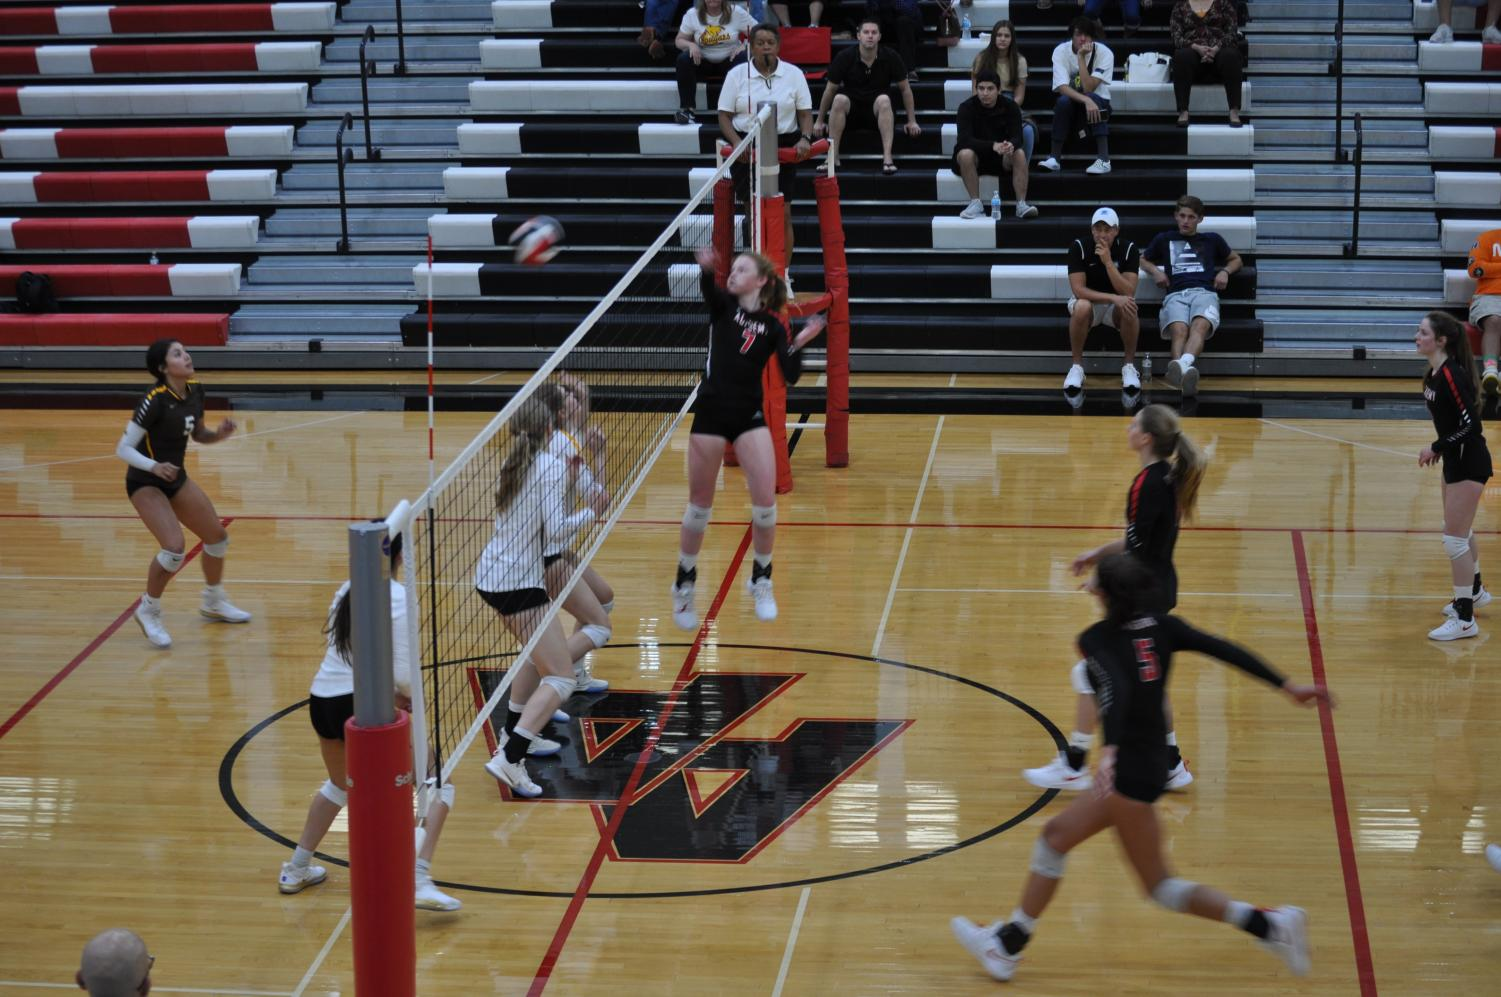 Volleyball+Mid-Season+Recap%3A+Volleyball+Team+is+on+the+Rise